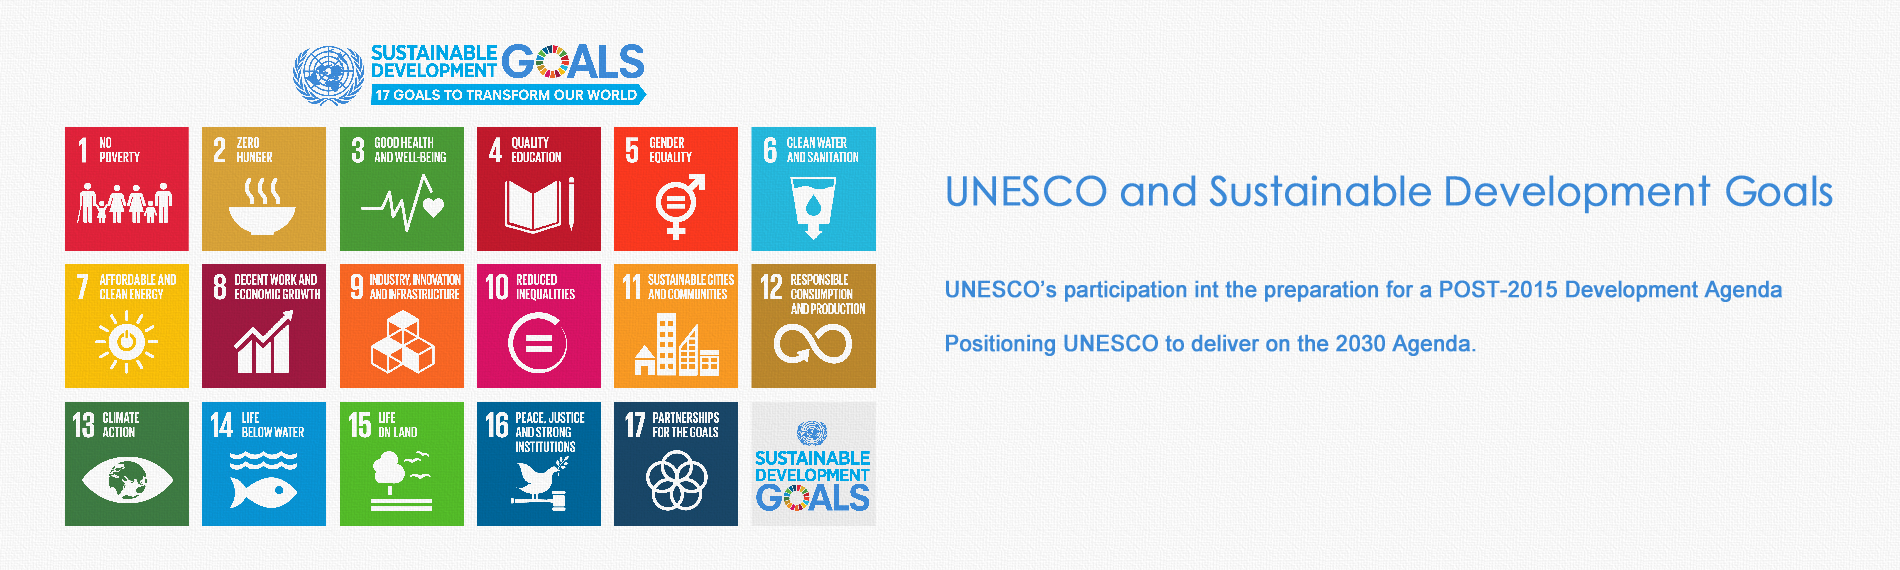 UNESCO and Sustainable Development Goals http://www.cipsh.net/web/news-119.htm